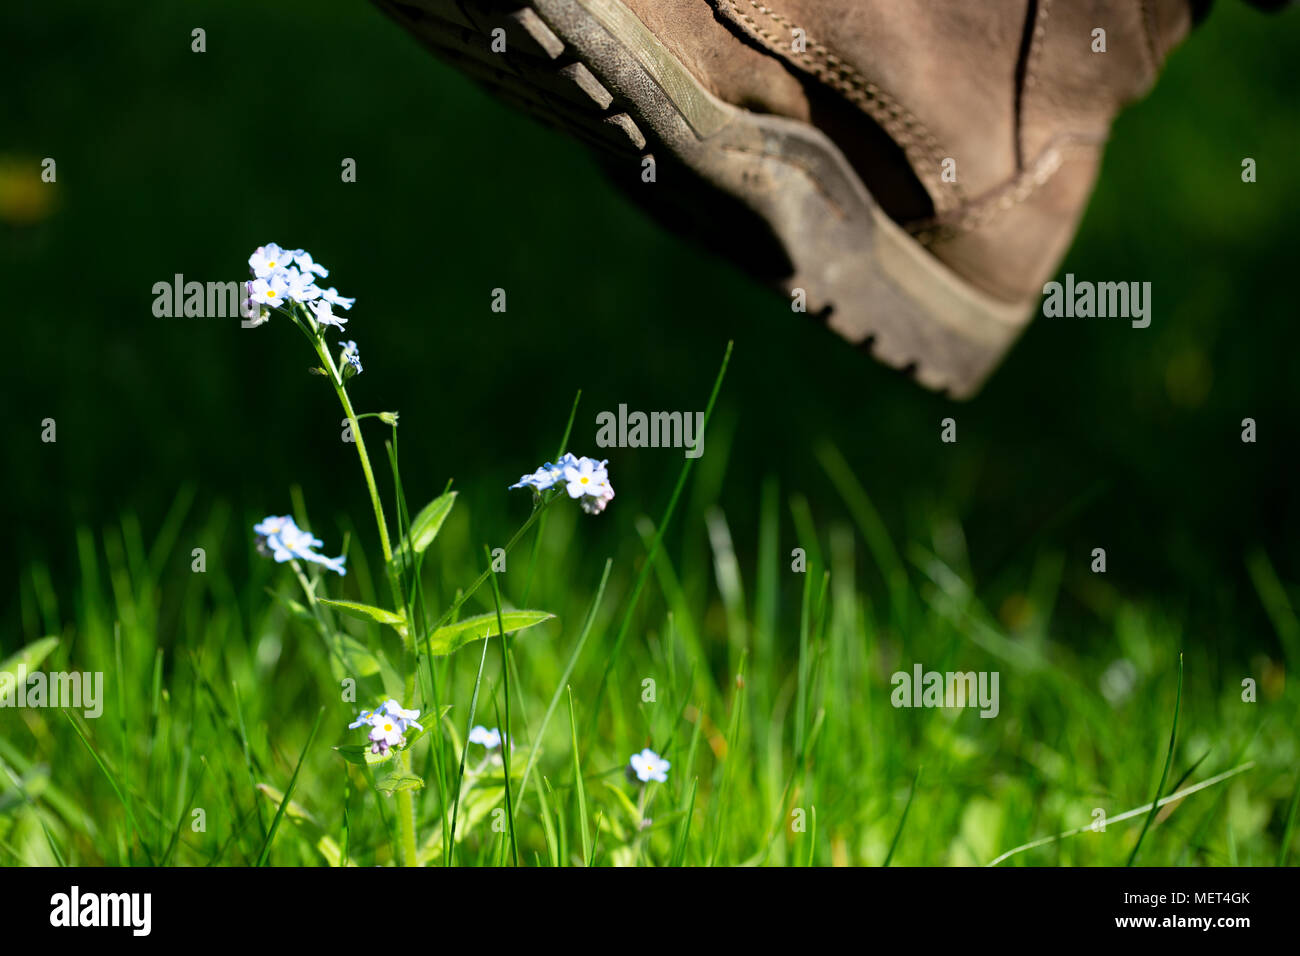 Vulnerable flower nearly trod on by a boot - Stock Image